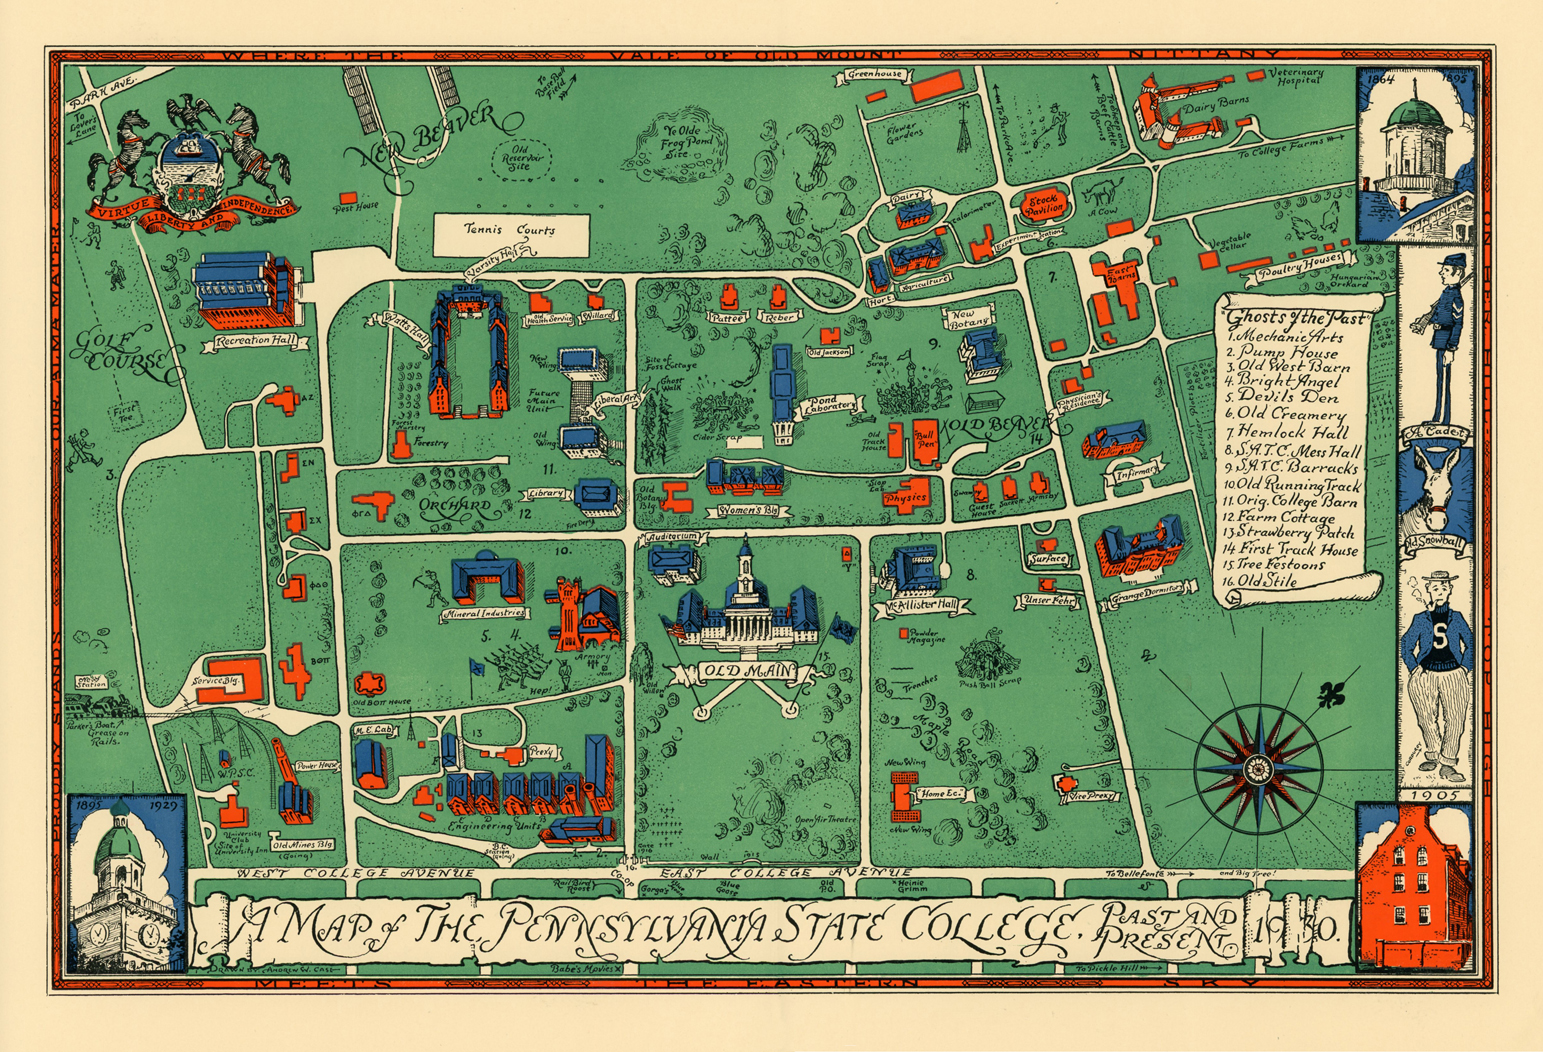 A Cool 1930 Map Of Penn State The Penn Stater Magazine